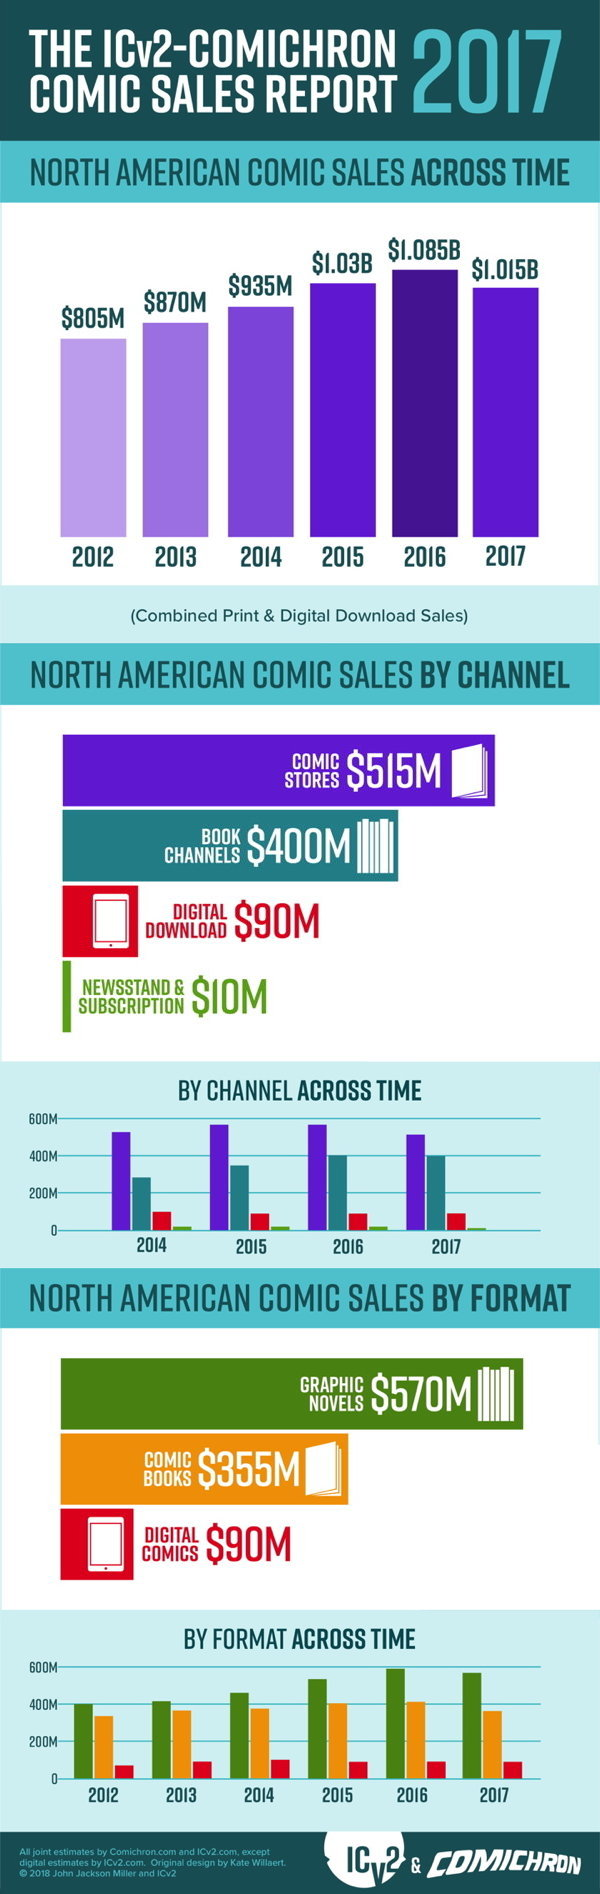 Comichron: Industry-wide Comics and Graphic Novel Sales for 2017